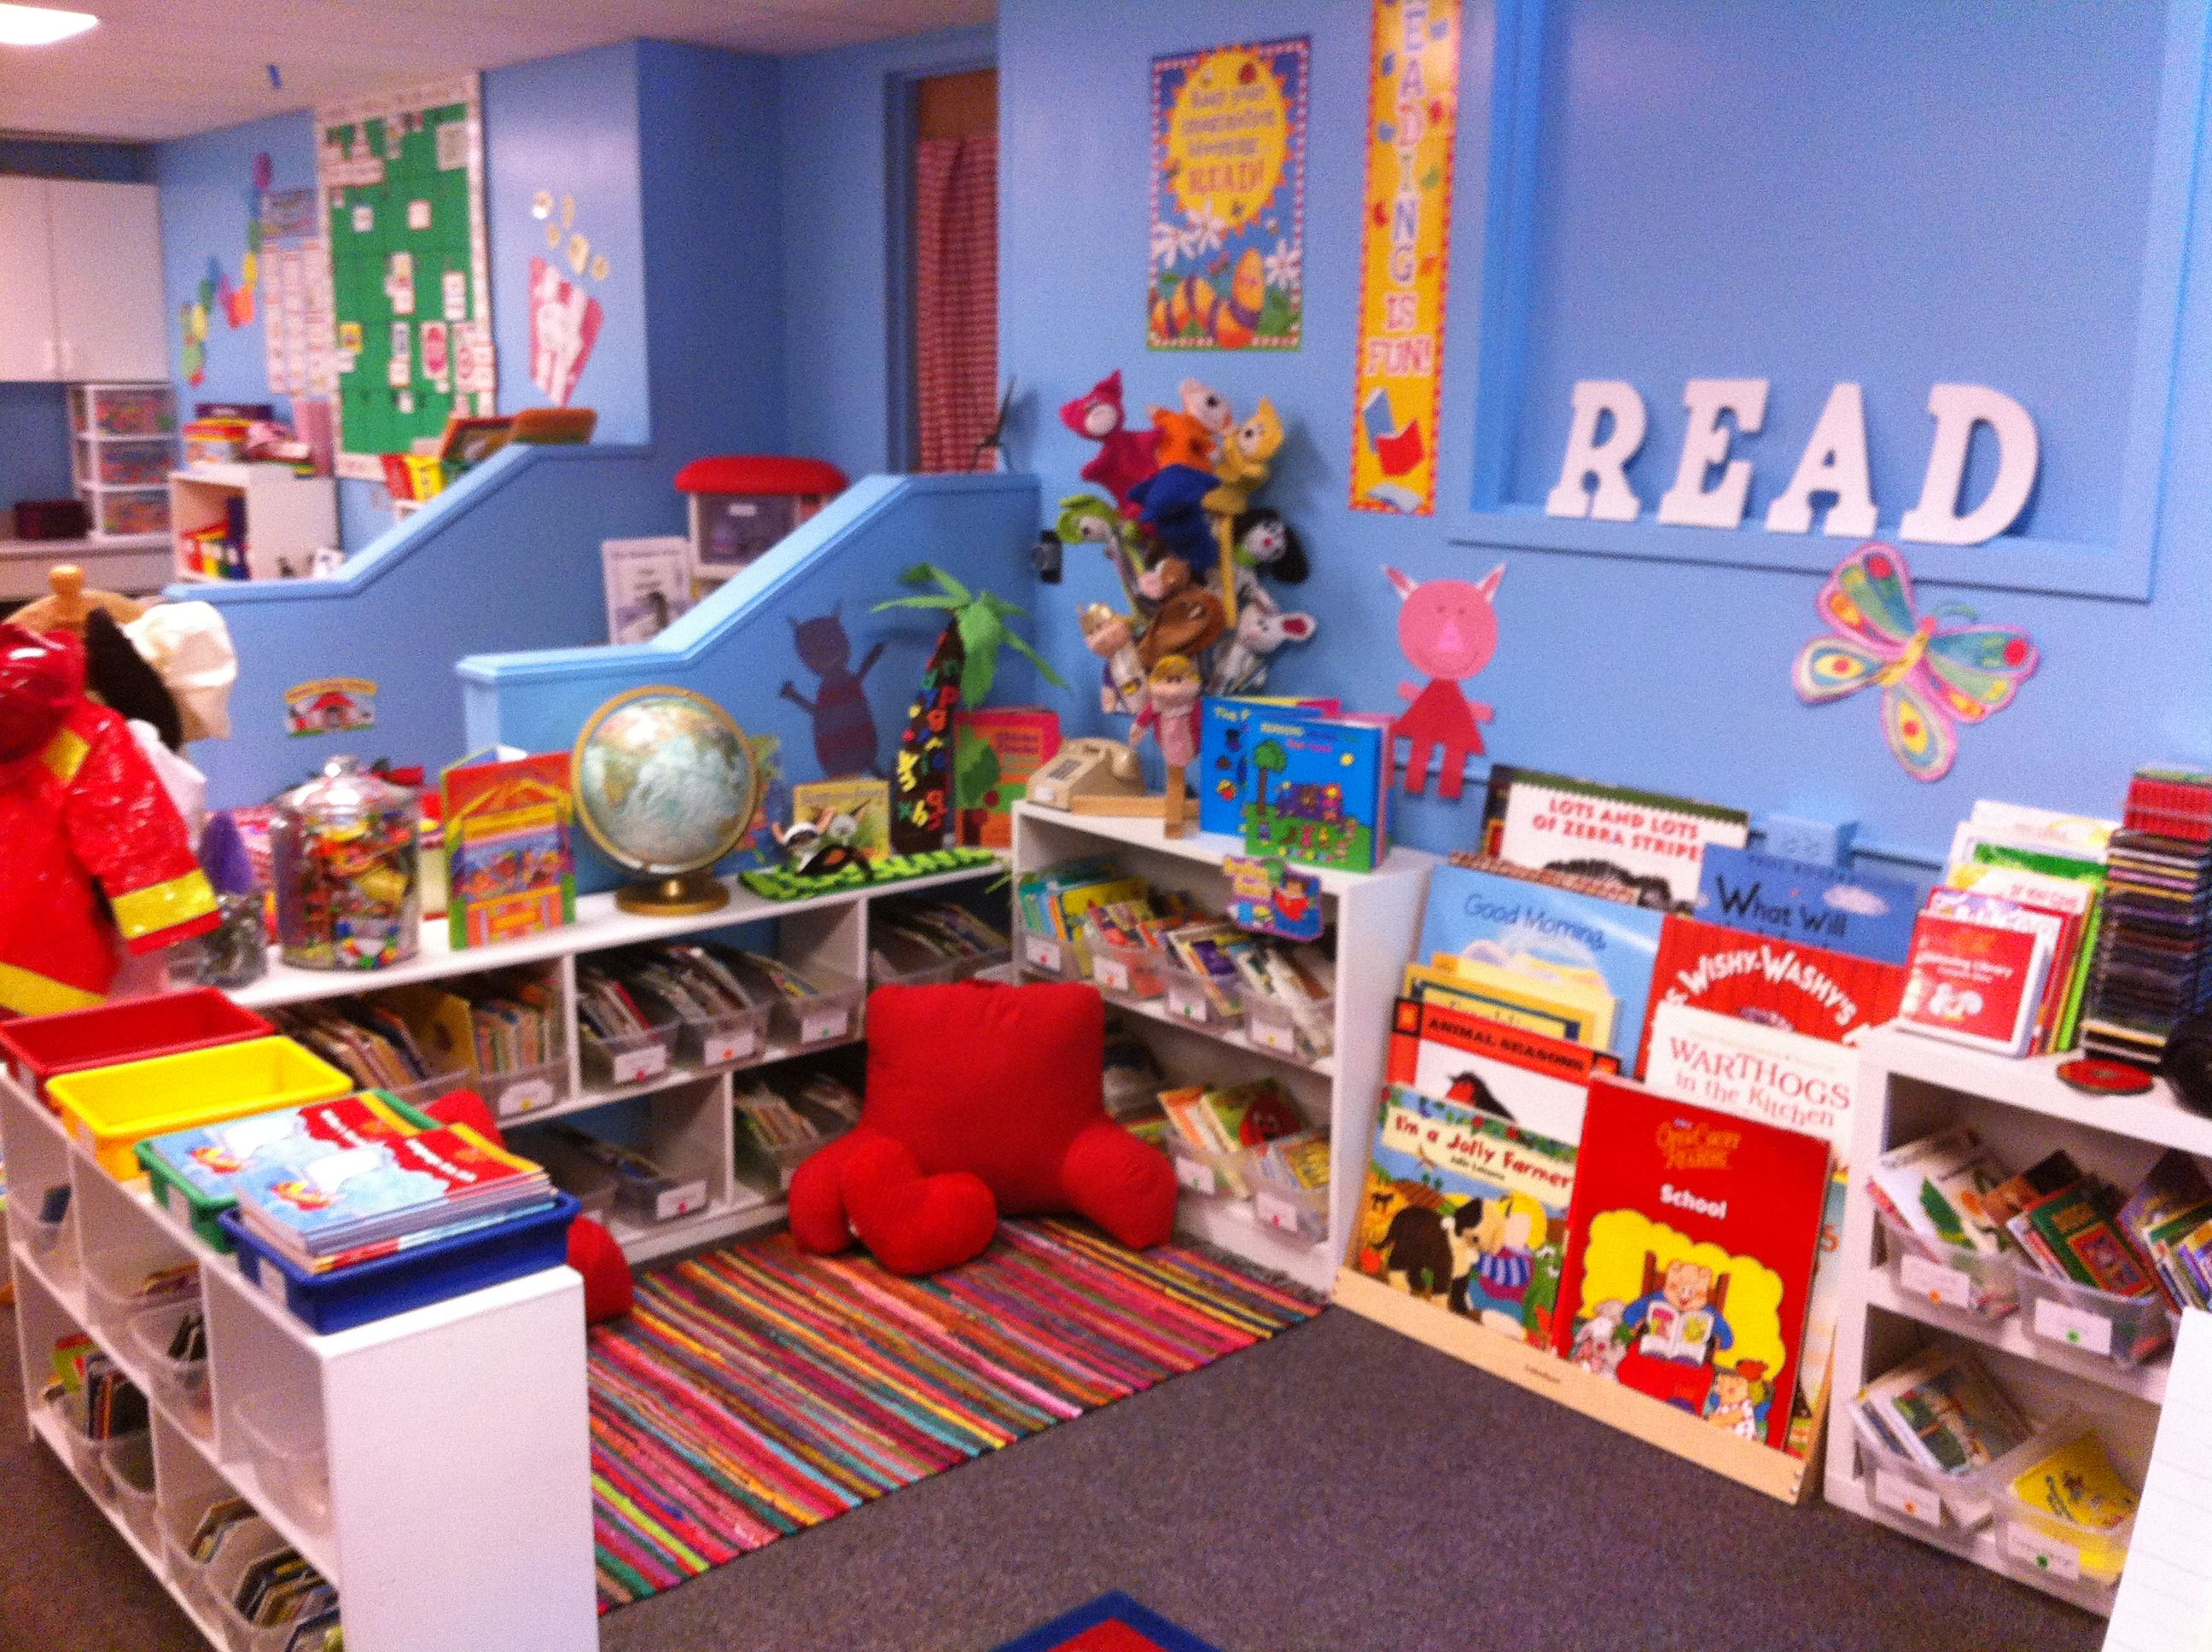 Wall colors for preschool rooms - Dreamy Kindergarten Classroom Library I Love The Blue Wall Color